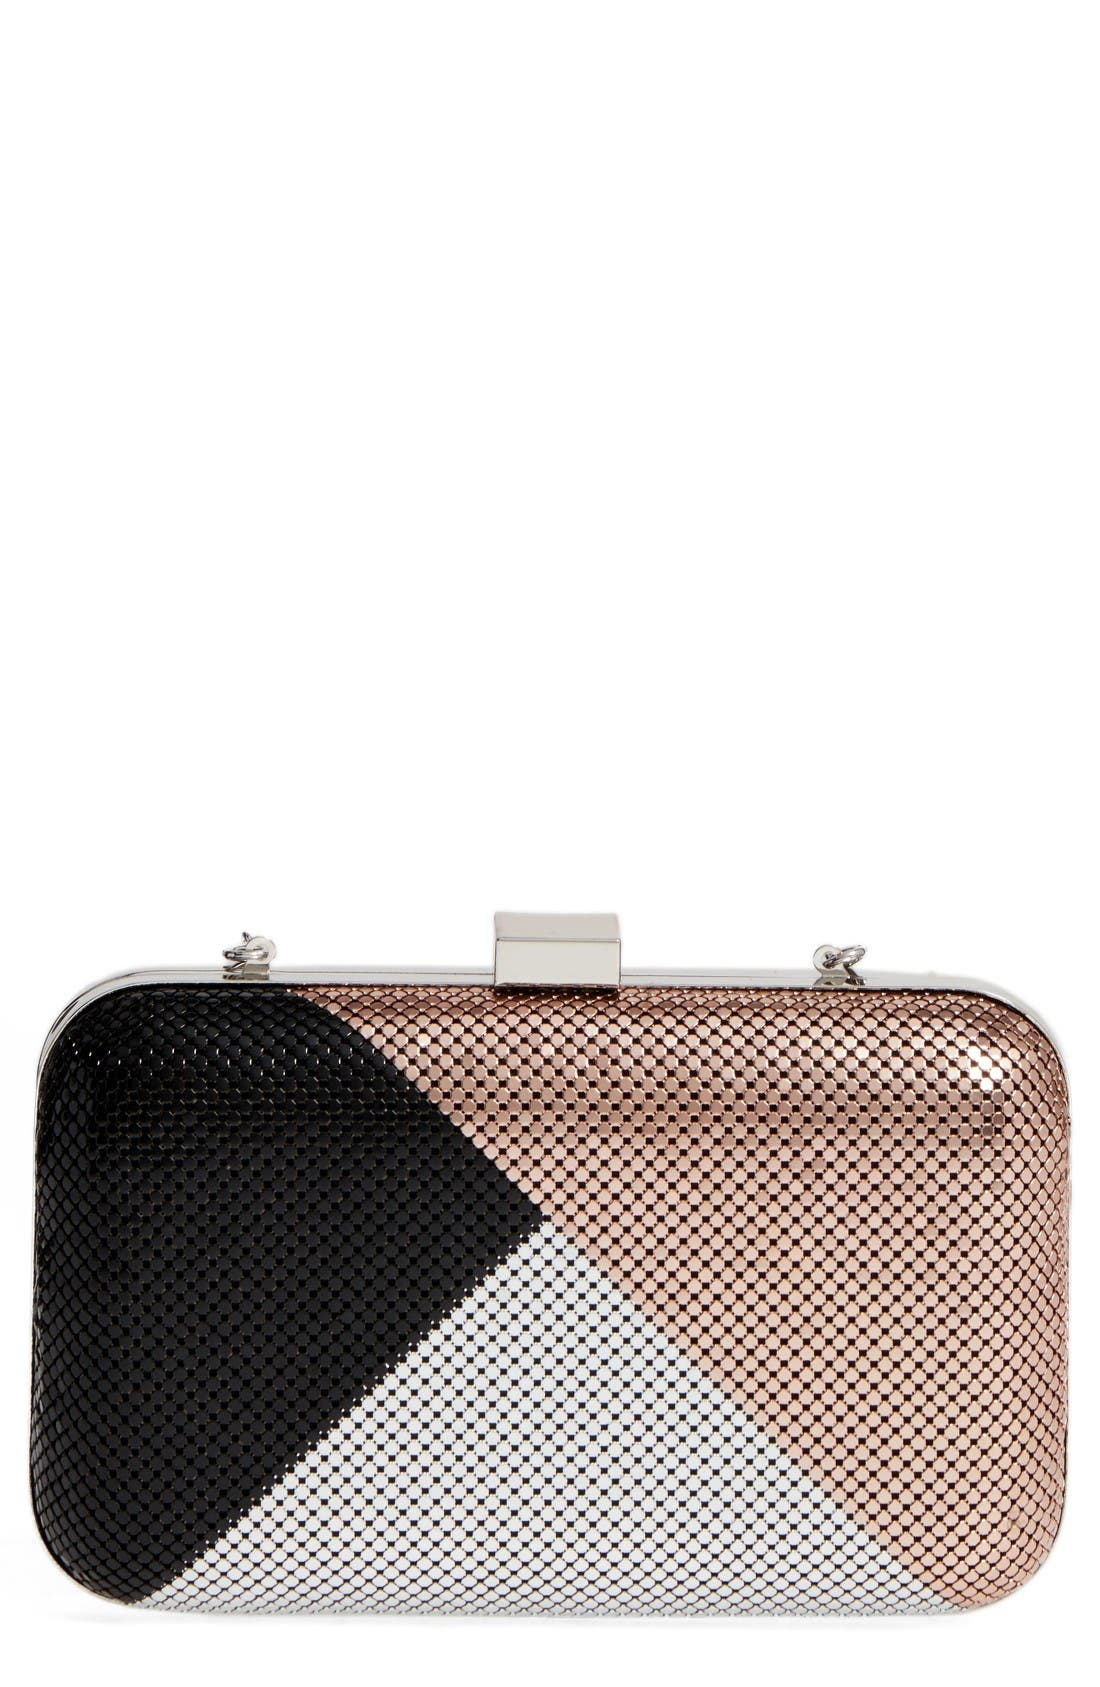 Alternate Image 1 Selected - Whiting & Davis Color Block Mesh Box Clutch